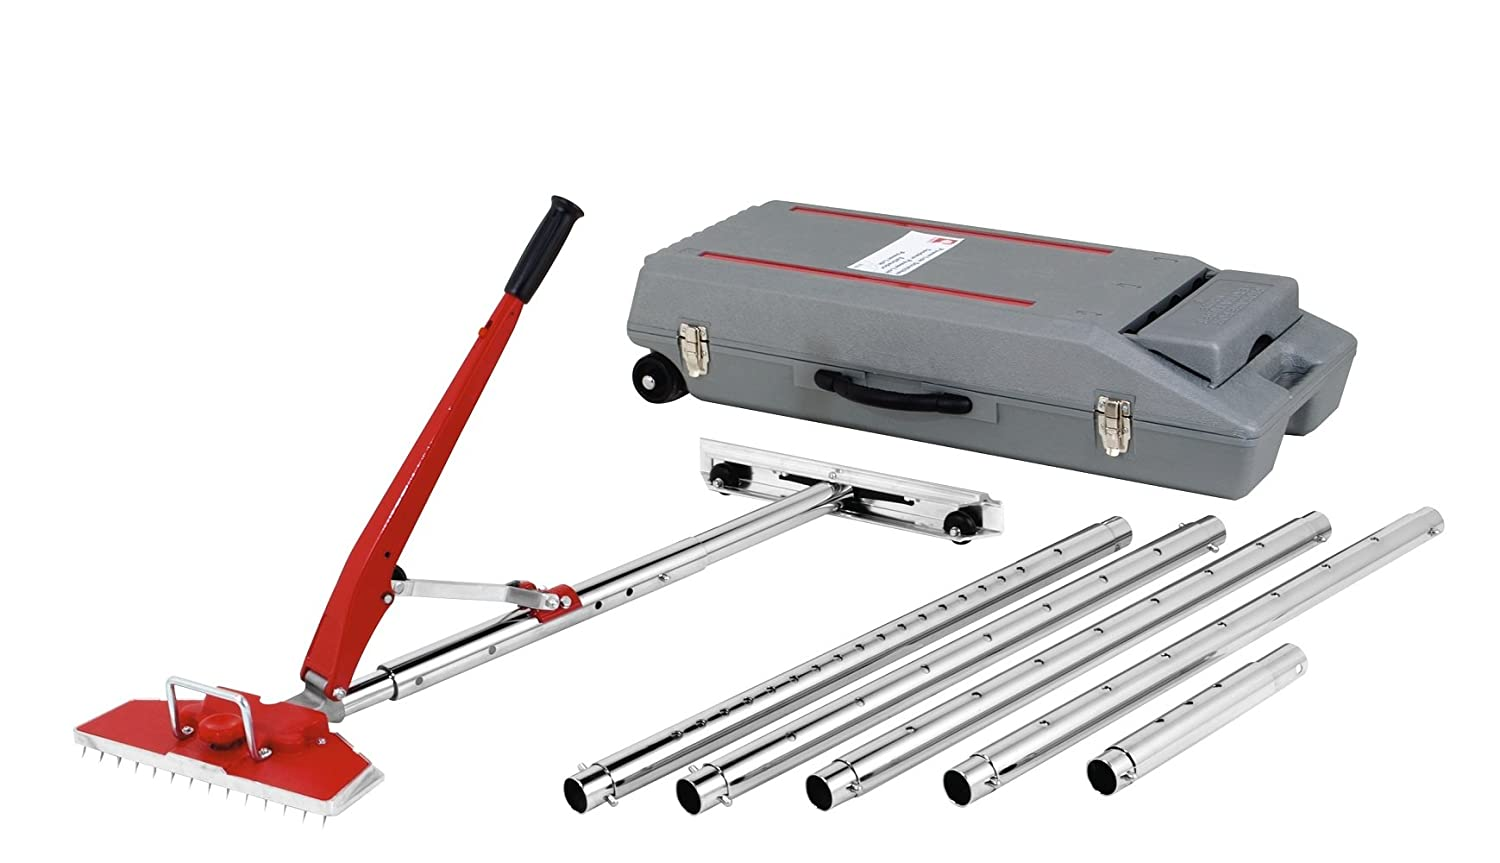 carpet stretcher. roberts model 10-254 23-1/2-feet power-lok carpet stretcher with of stretching length including wheeled carrying case - amazon.com r